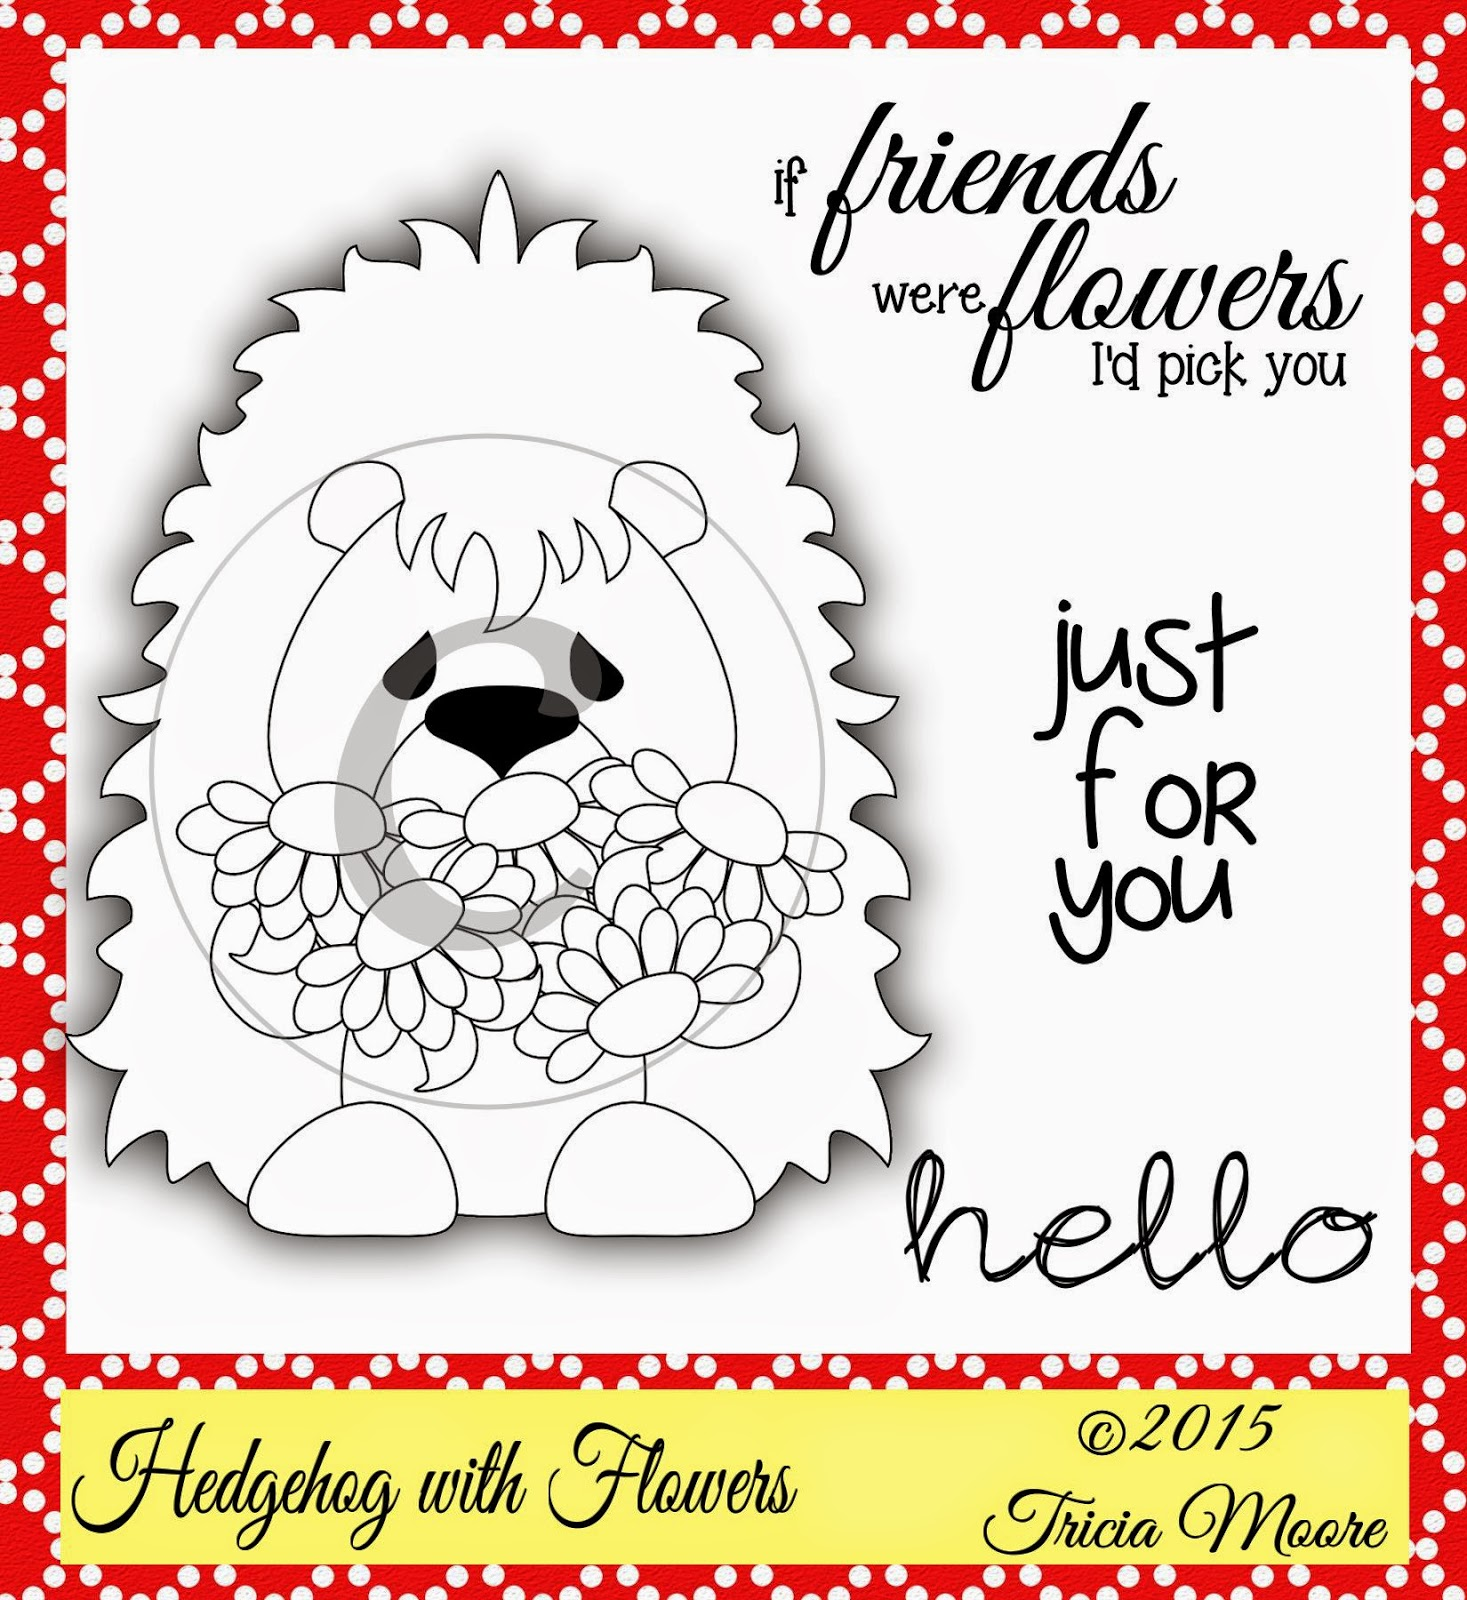 http://www.lshdigidesigns.com/item_51/ds-Hedgehog-with-Flowers-digi.htm